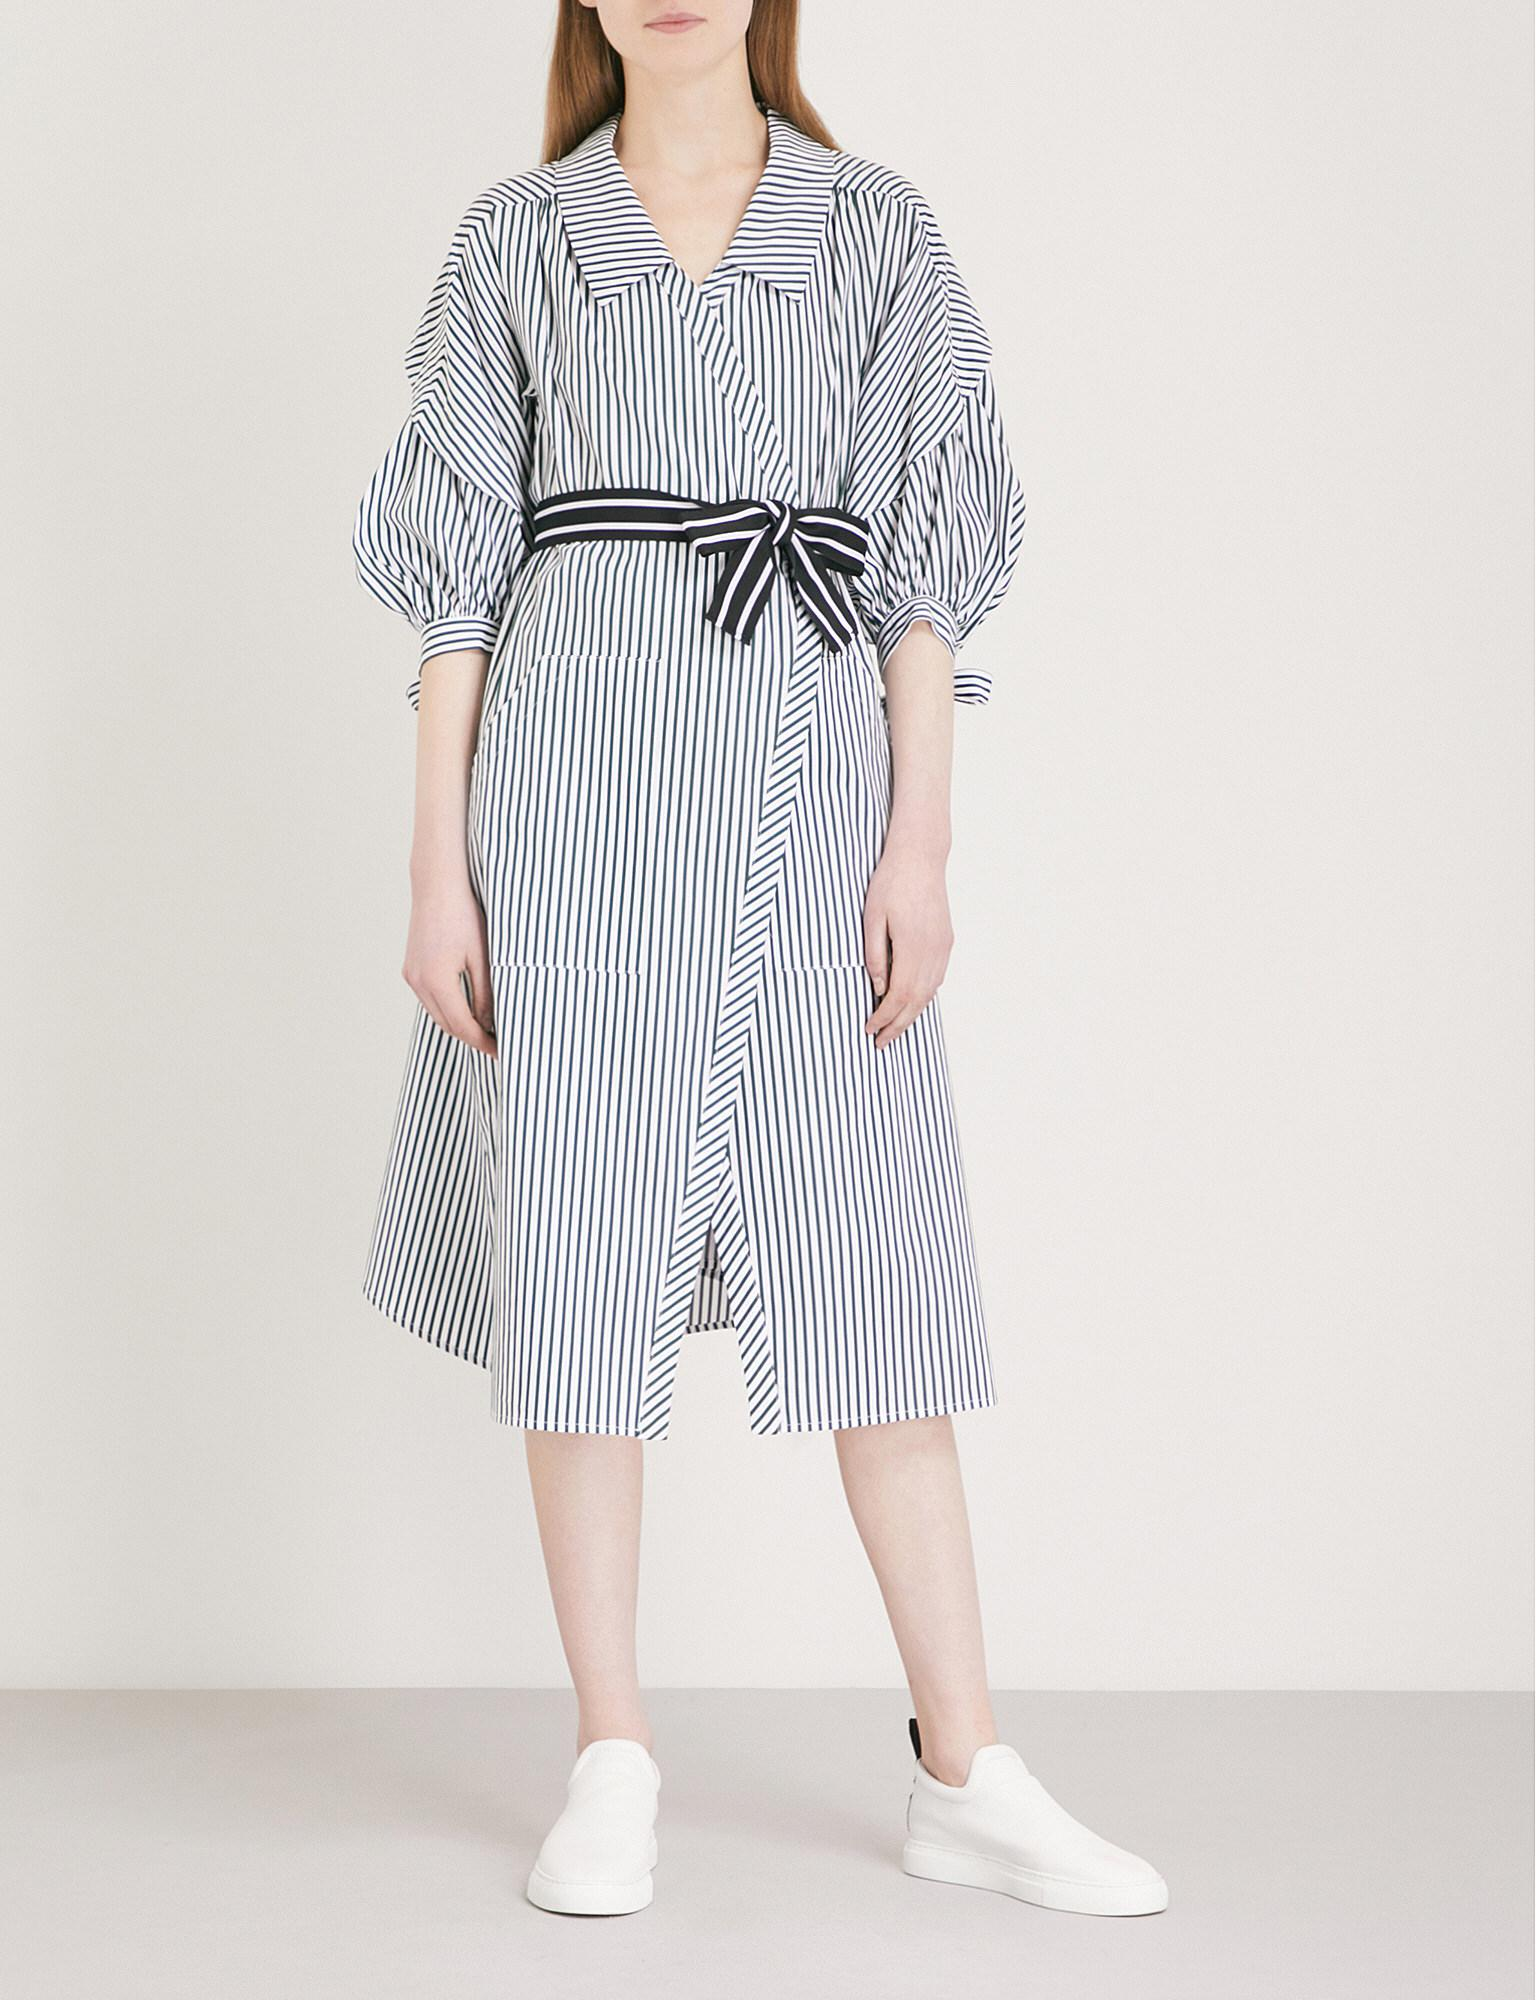 394542eaad Maje Rilucci Striped Cotton Shirt Dress in Blue - Lyst